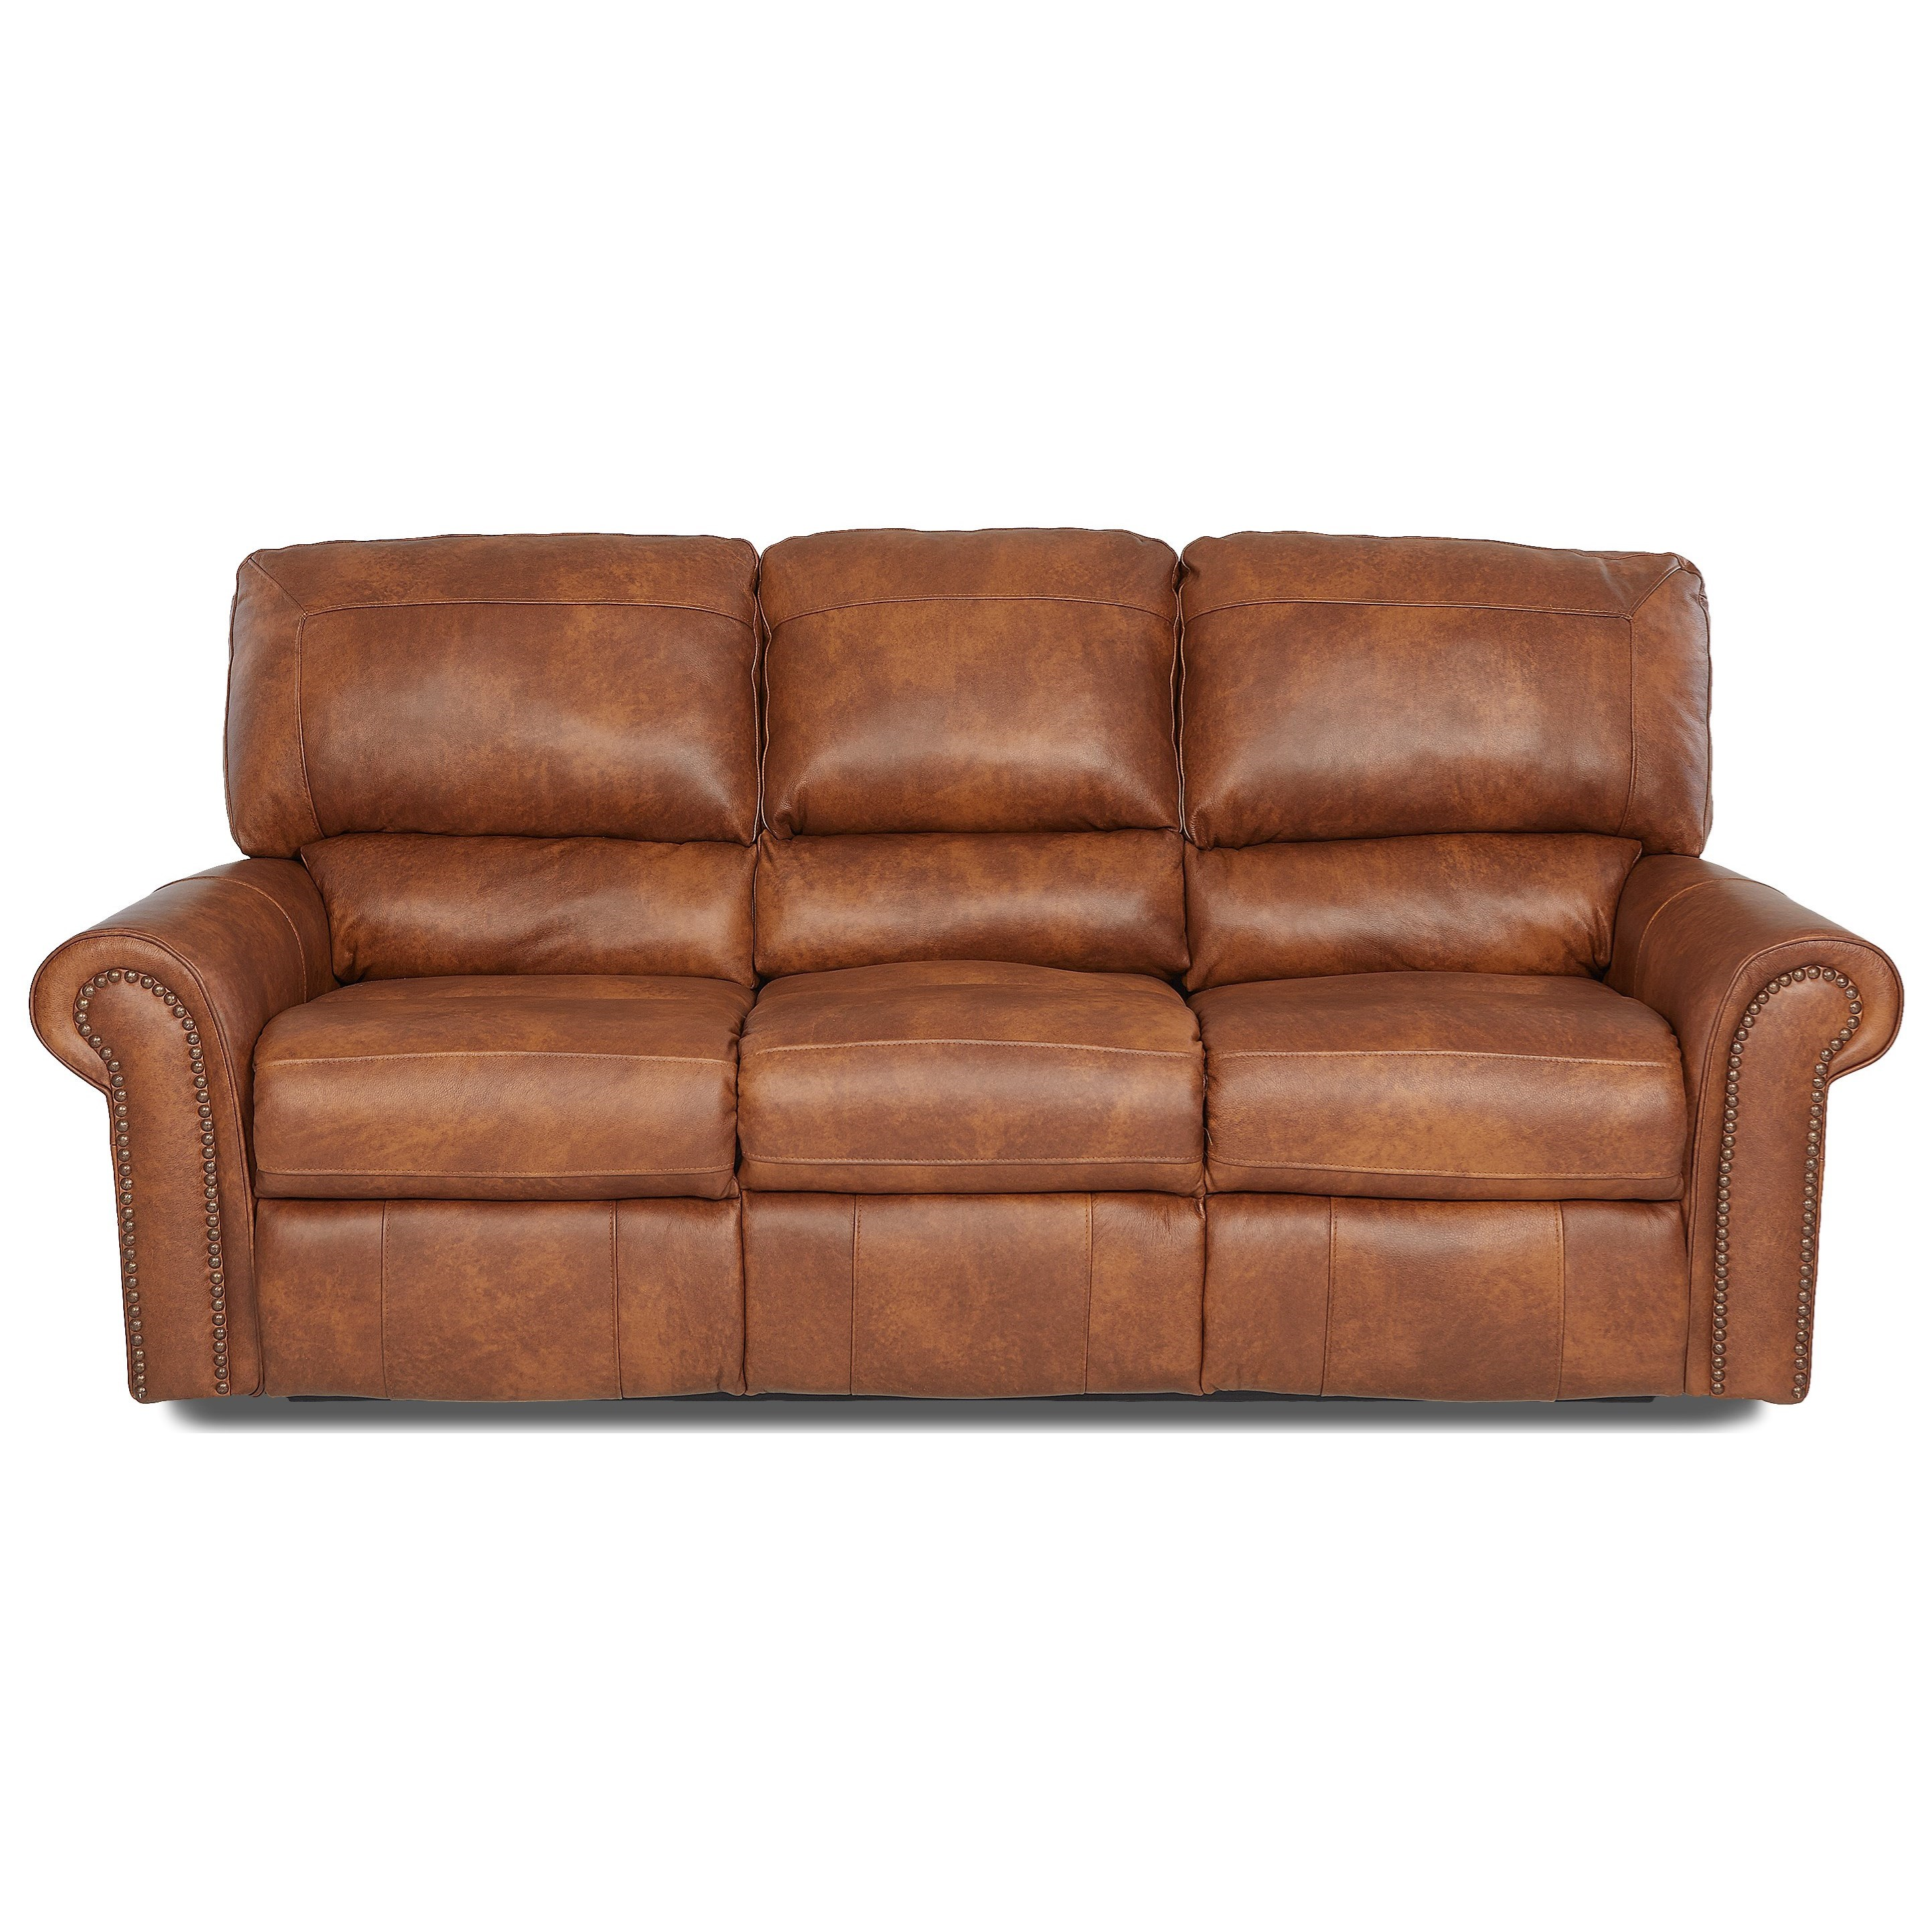 klaussner savannah lv62413 pwrs power reclining sofa with